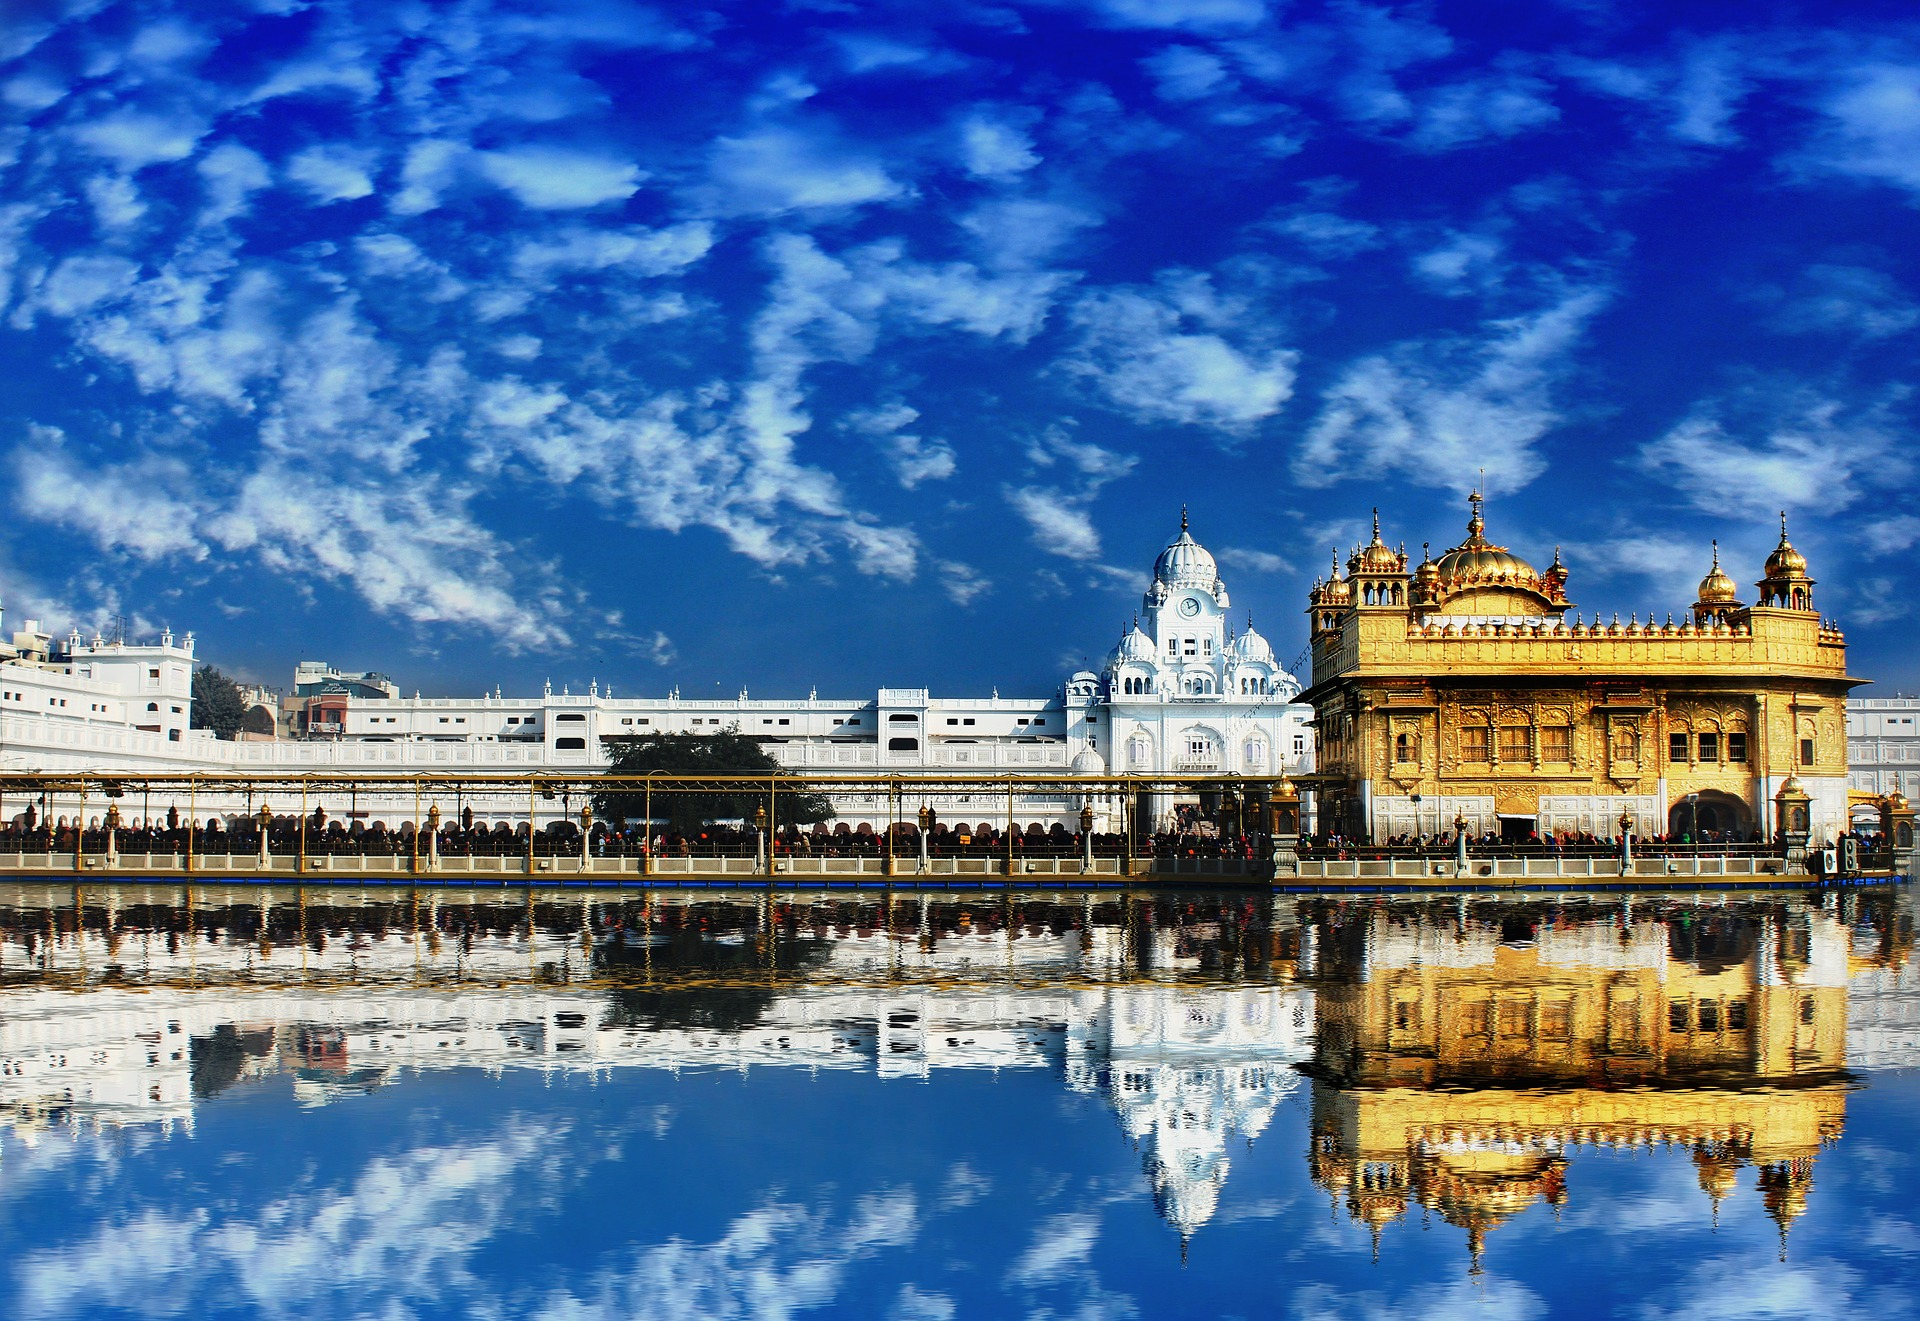 Explore Amritsar like a local - Travel Begins With Savaari